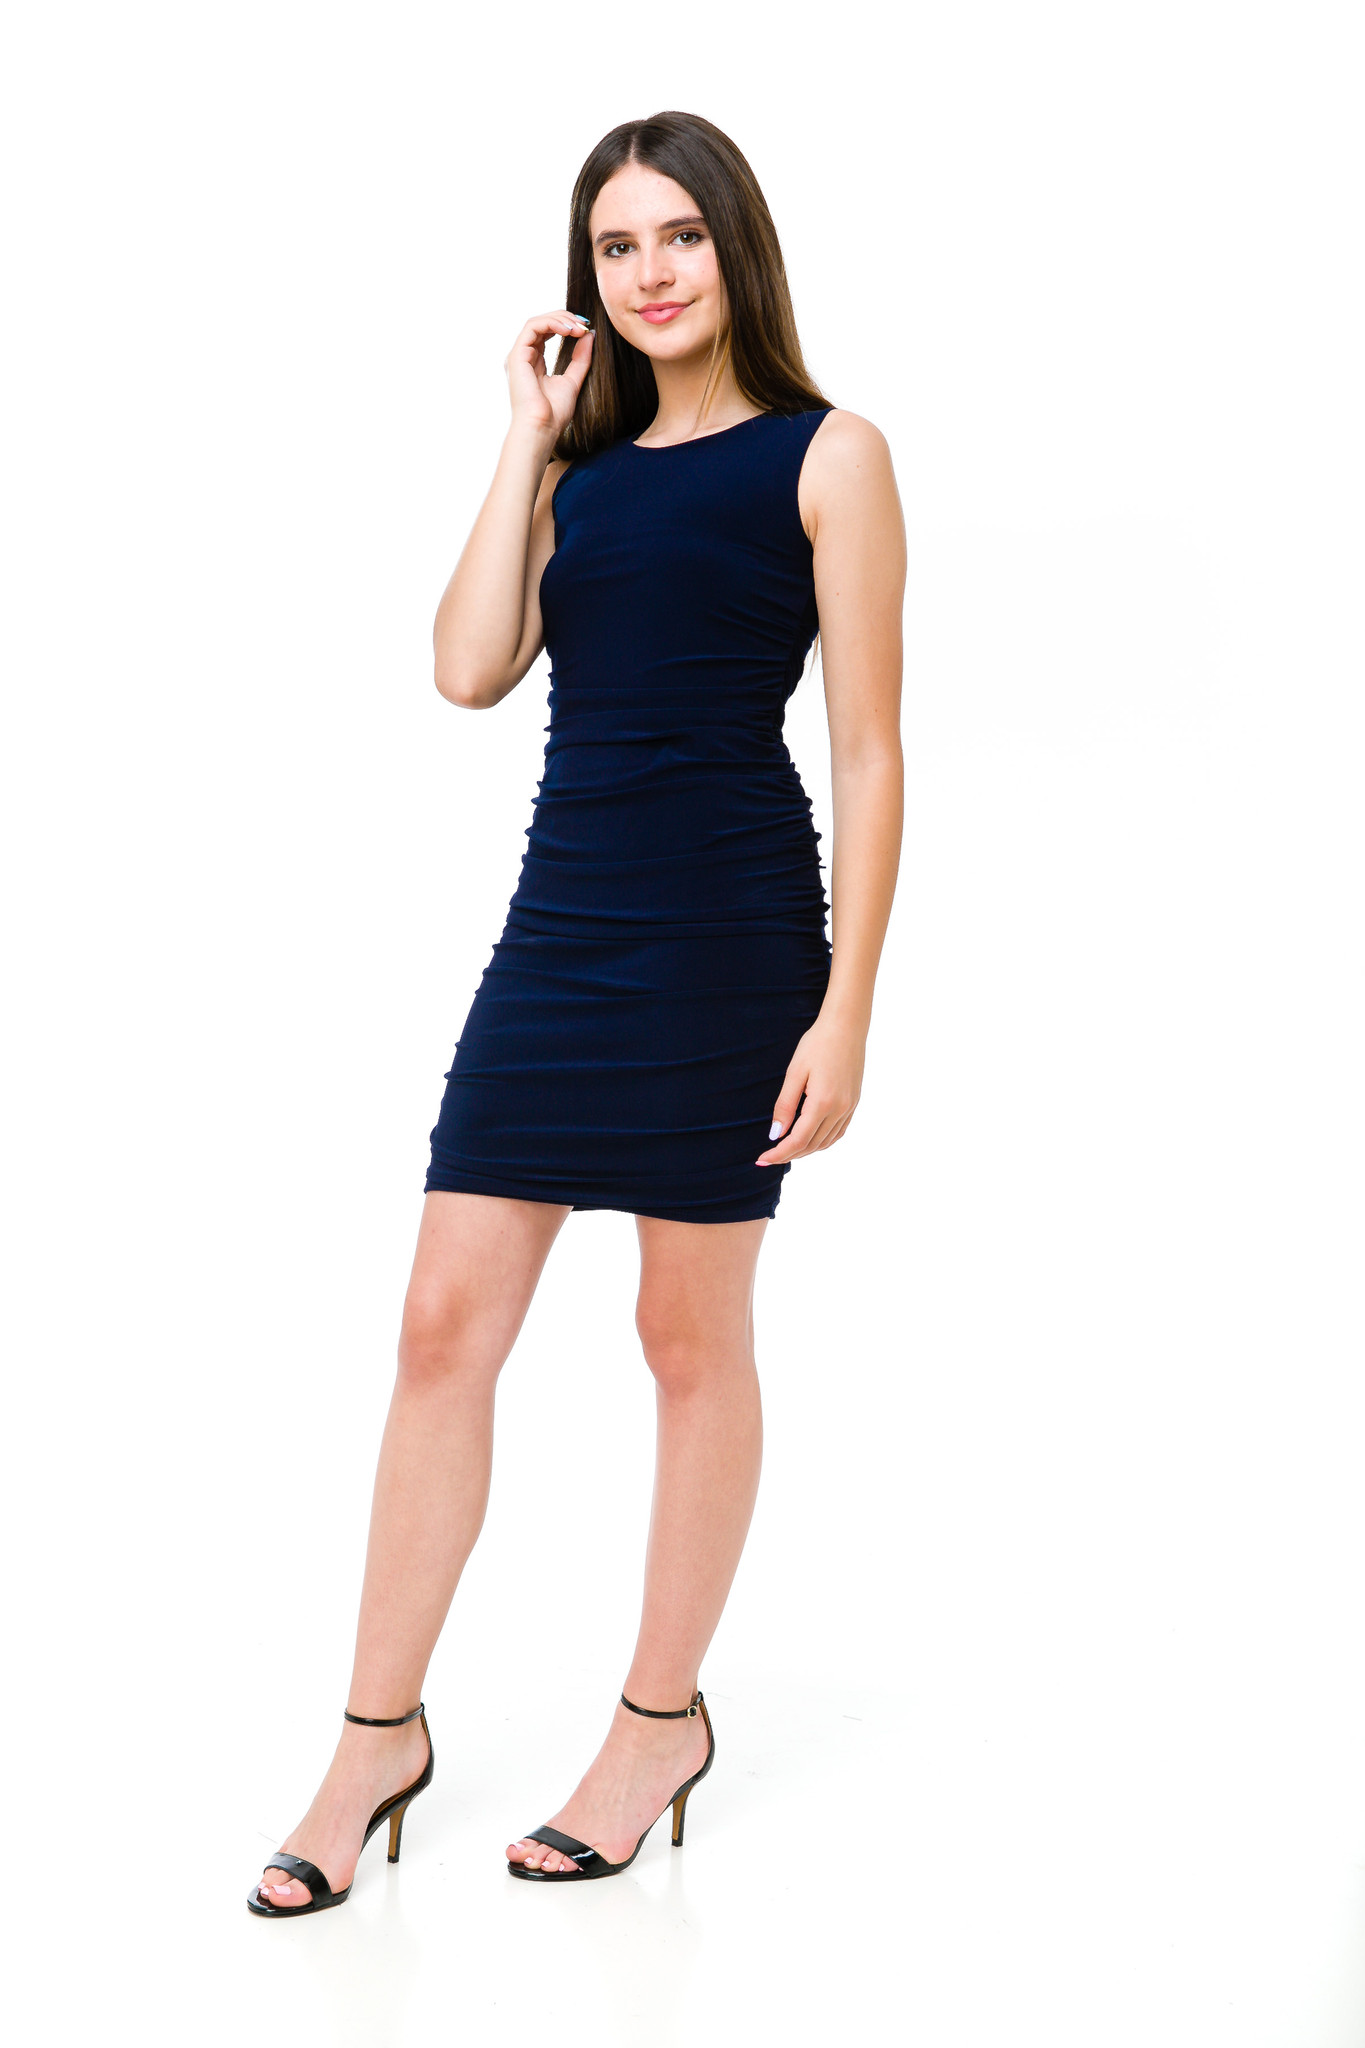 Tween Girls Navy Ruched Fitted Dress in Longer Length full body shot. This is an all over stretch fabric, made comfortable for any girl.